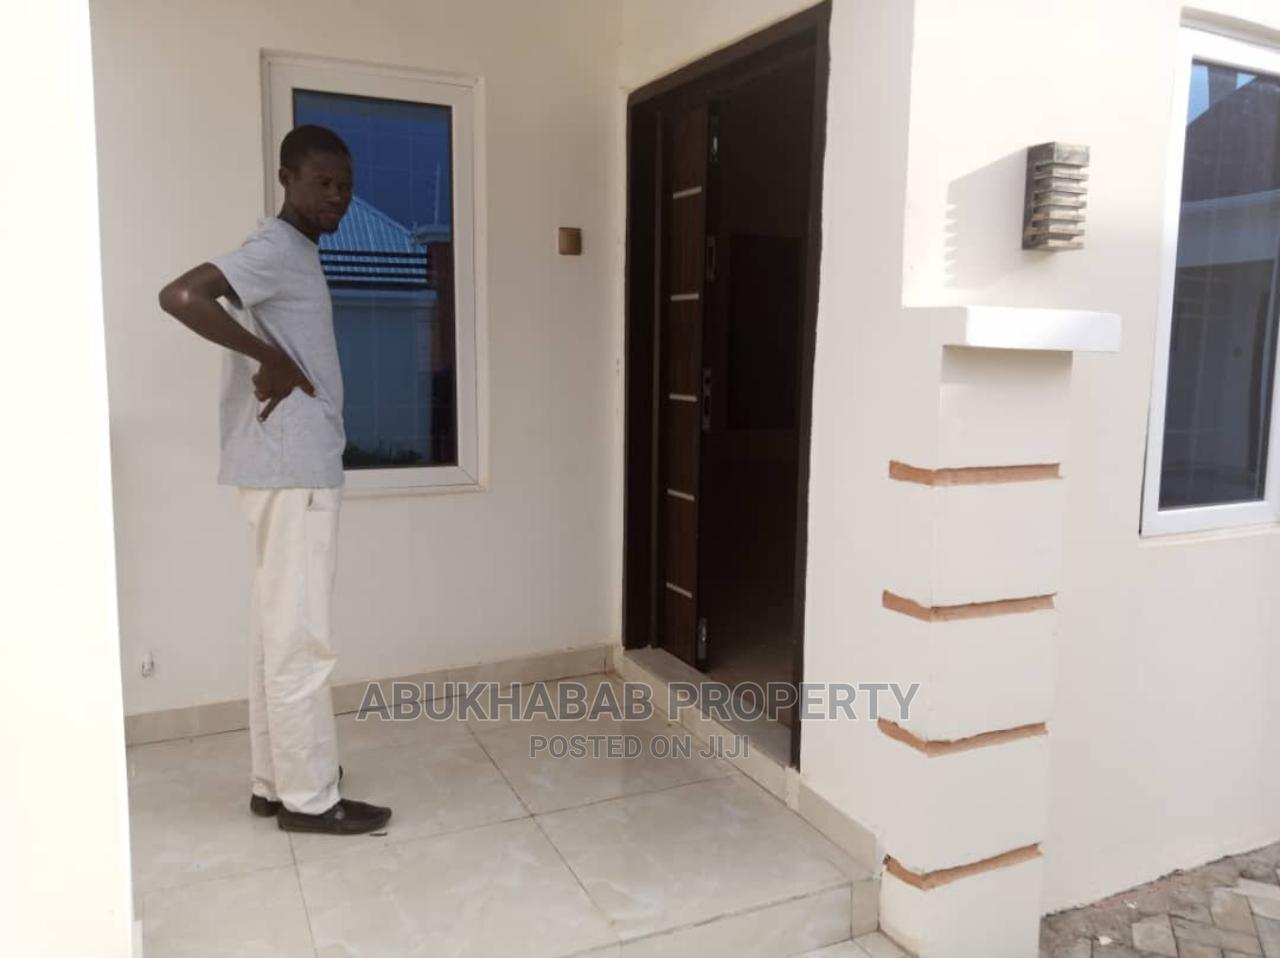 Furnished 3bdrm Bungalow in Mhp, Kaduna / Kaduna State for Sale | Houses & Apartments For Sale for sale in Kaduna / Kaduna State, Kaduna State, Nigeria